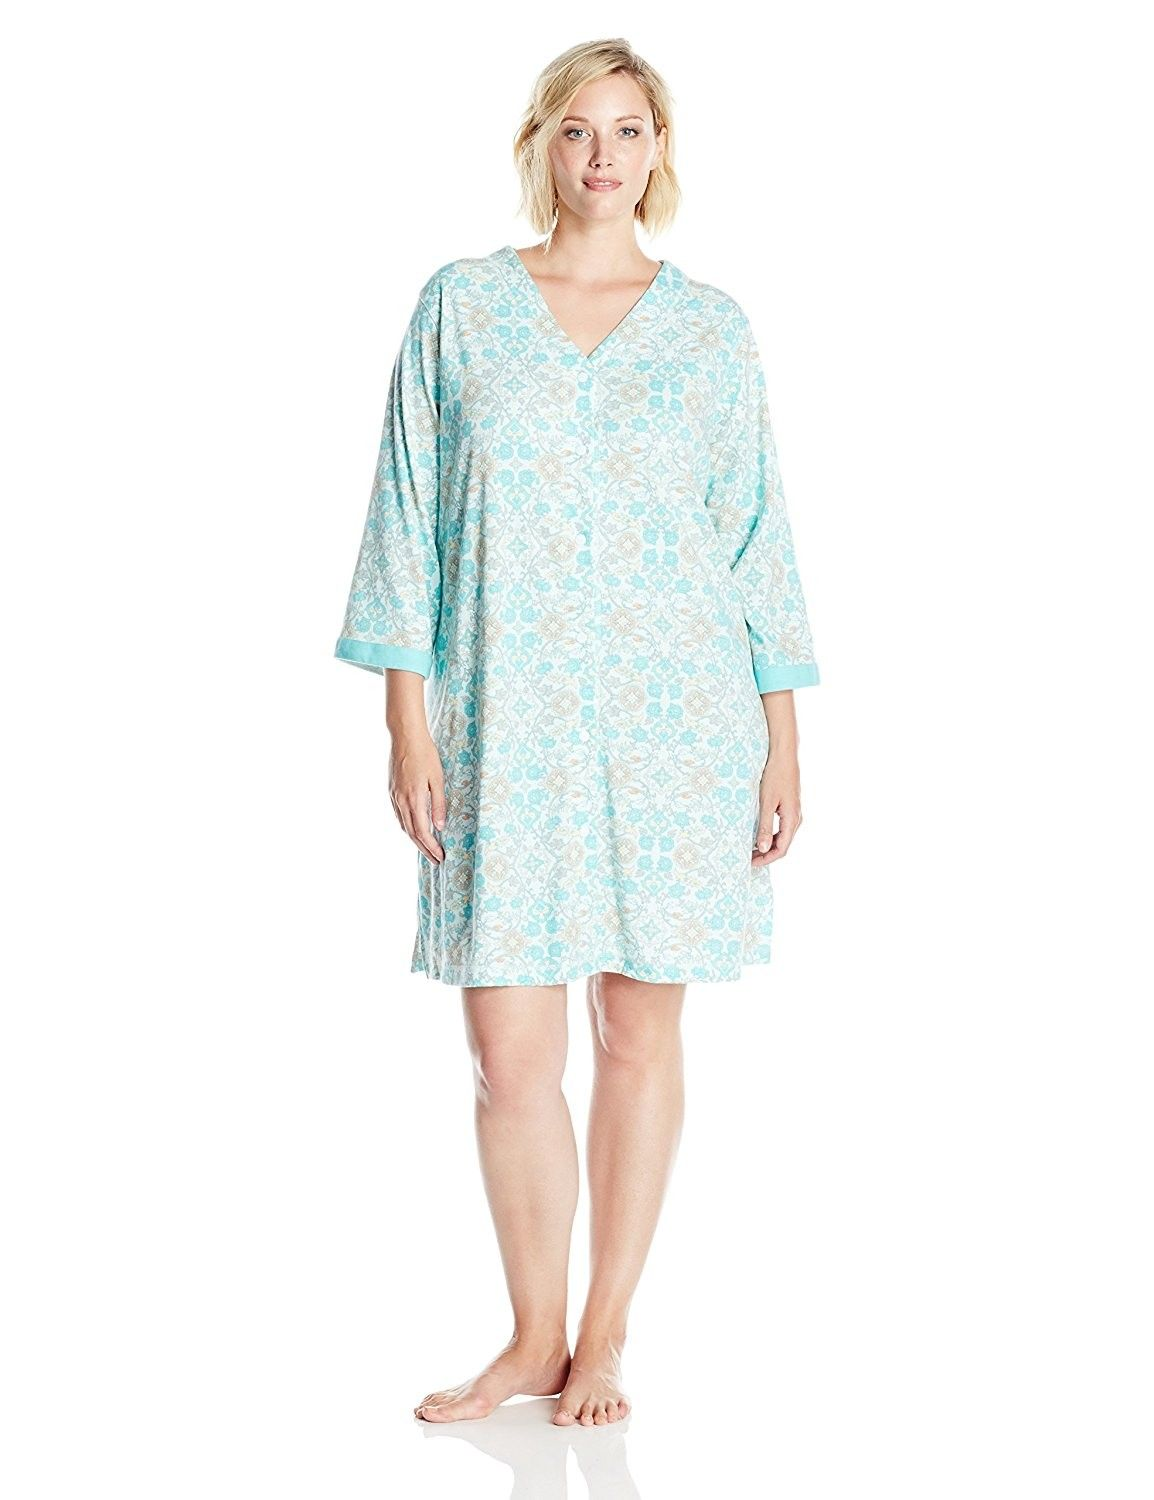 bce683ae7c8b Women s Plus Size Interlock Knit Short Snap Rob - Turquoise Floral ...